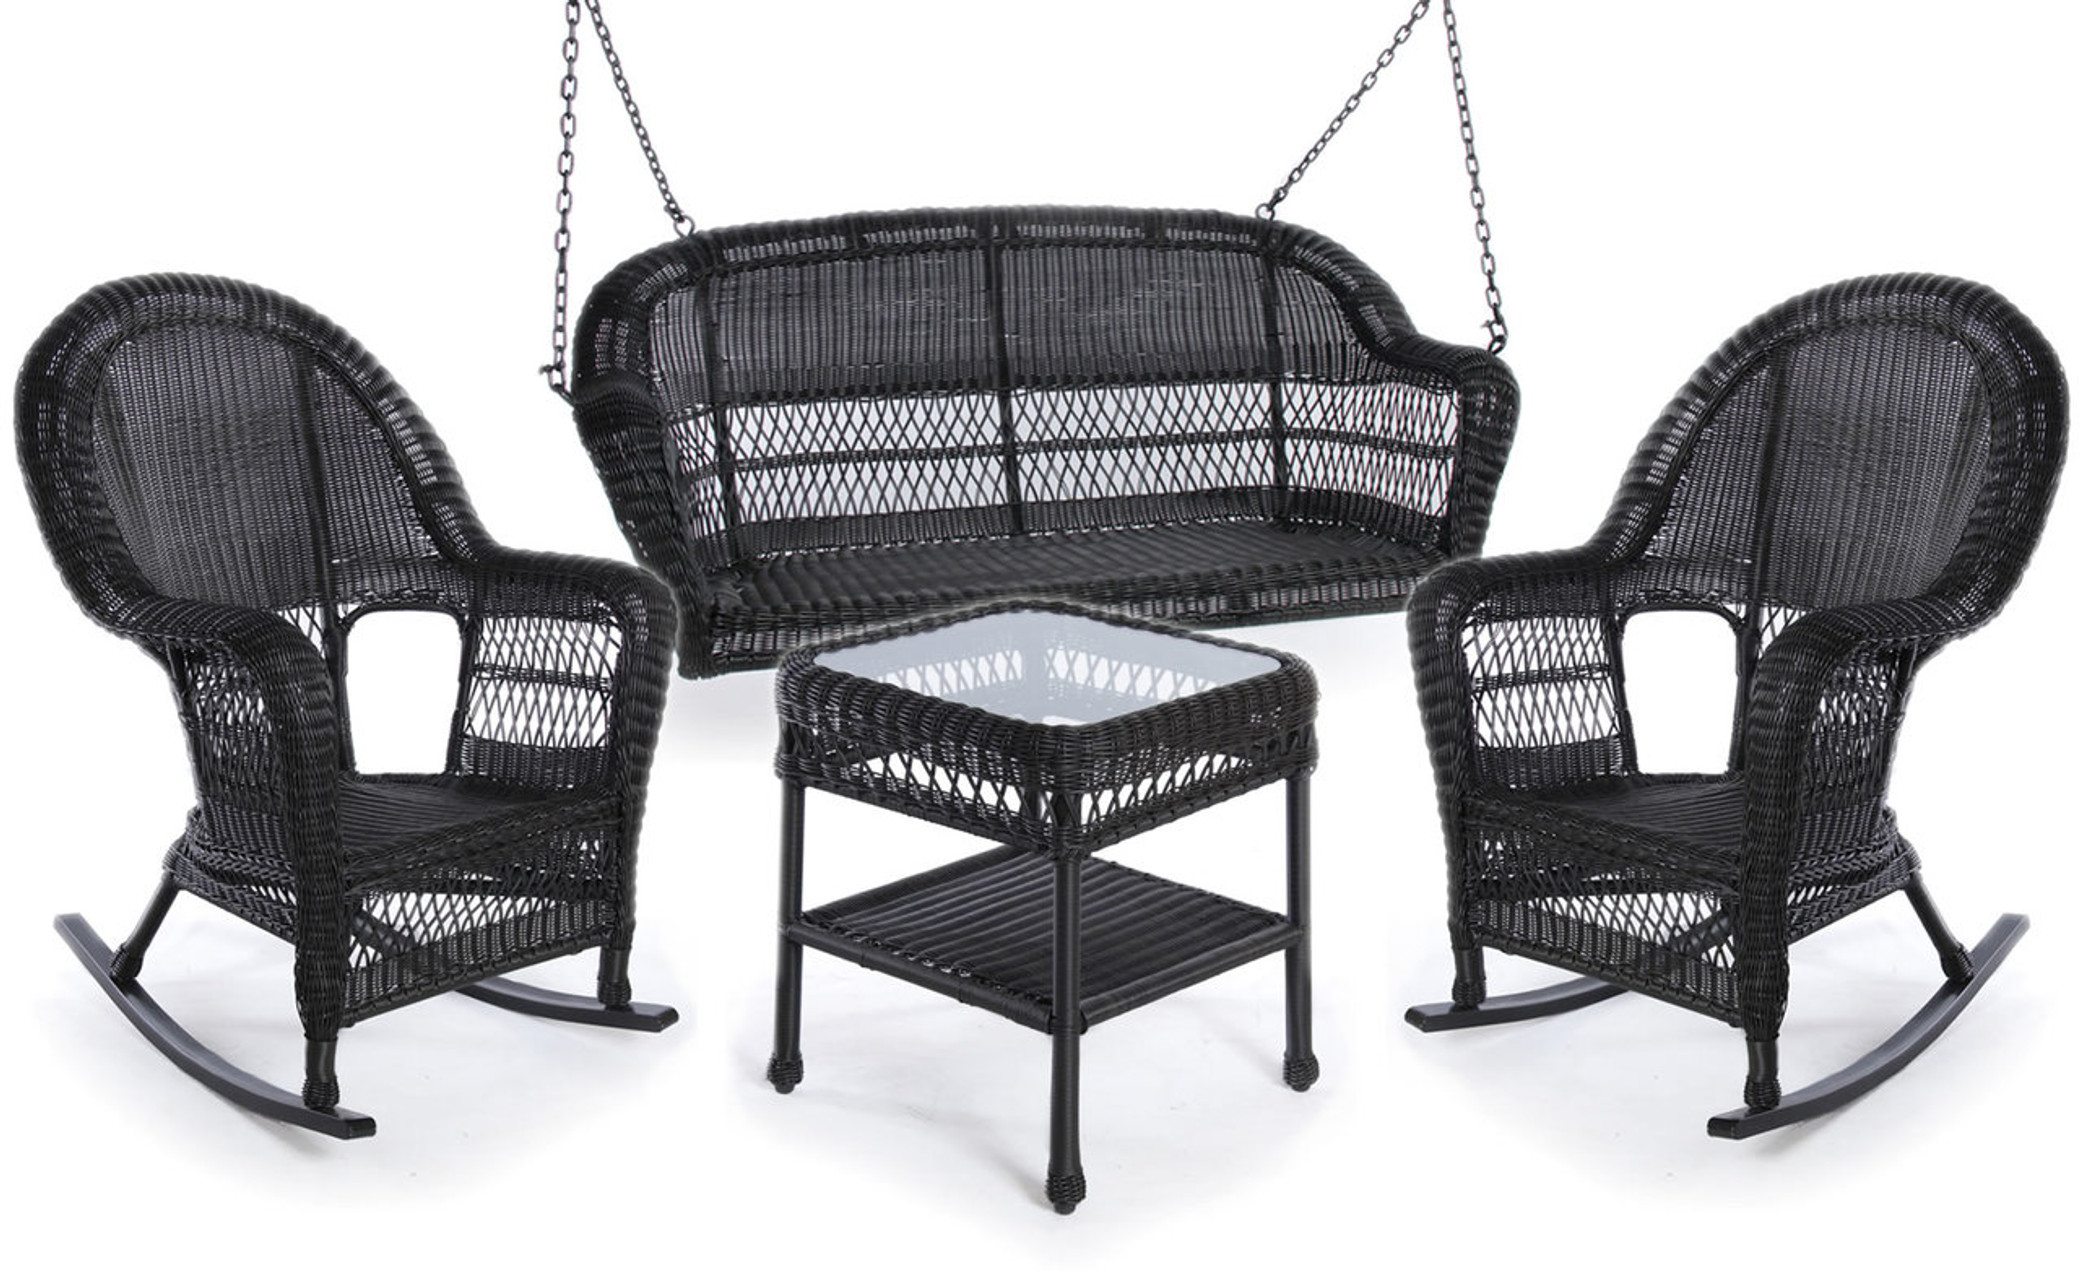 outdoor furniture trends. Trees And Trends Patio Furniture. Erwin \\u0026 Sons Antigua 4pc Swing Seating Set 3 Outdoor Furniture L